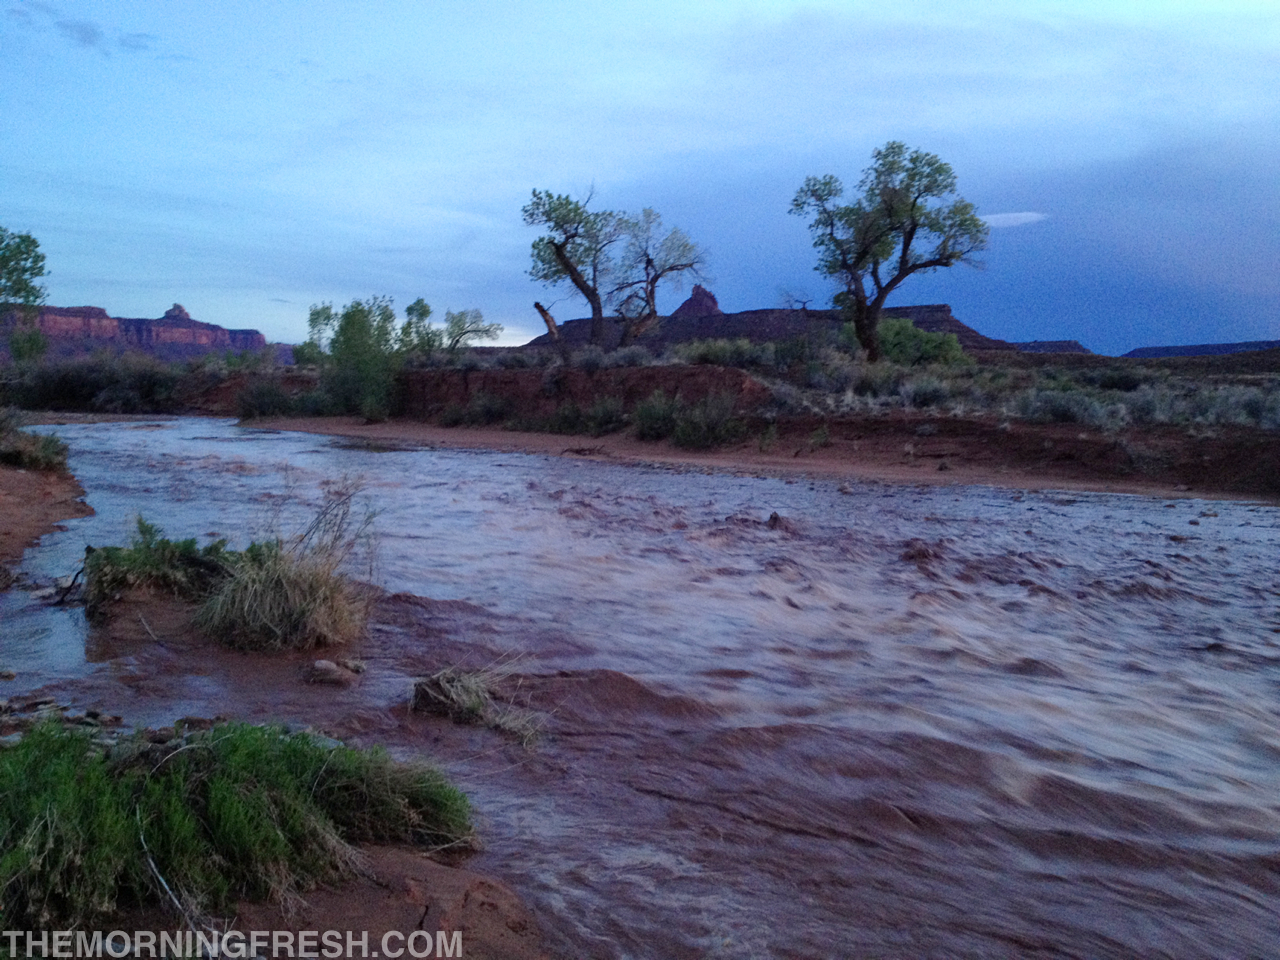 The flash flood that swept through the wash just below our campsite at Indian Creek.